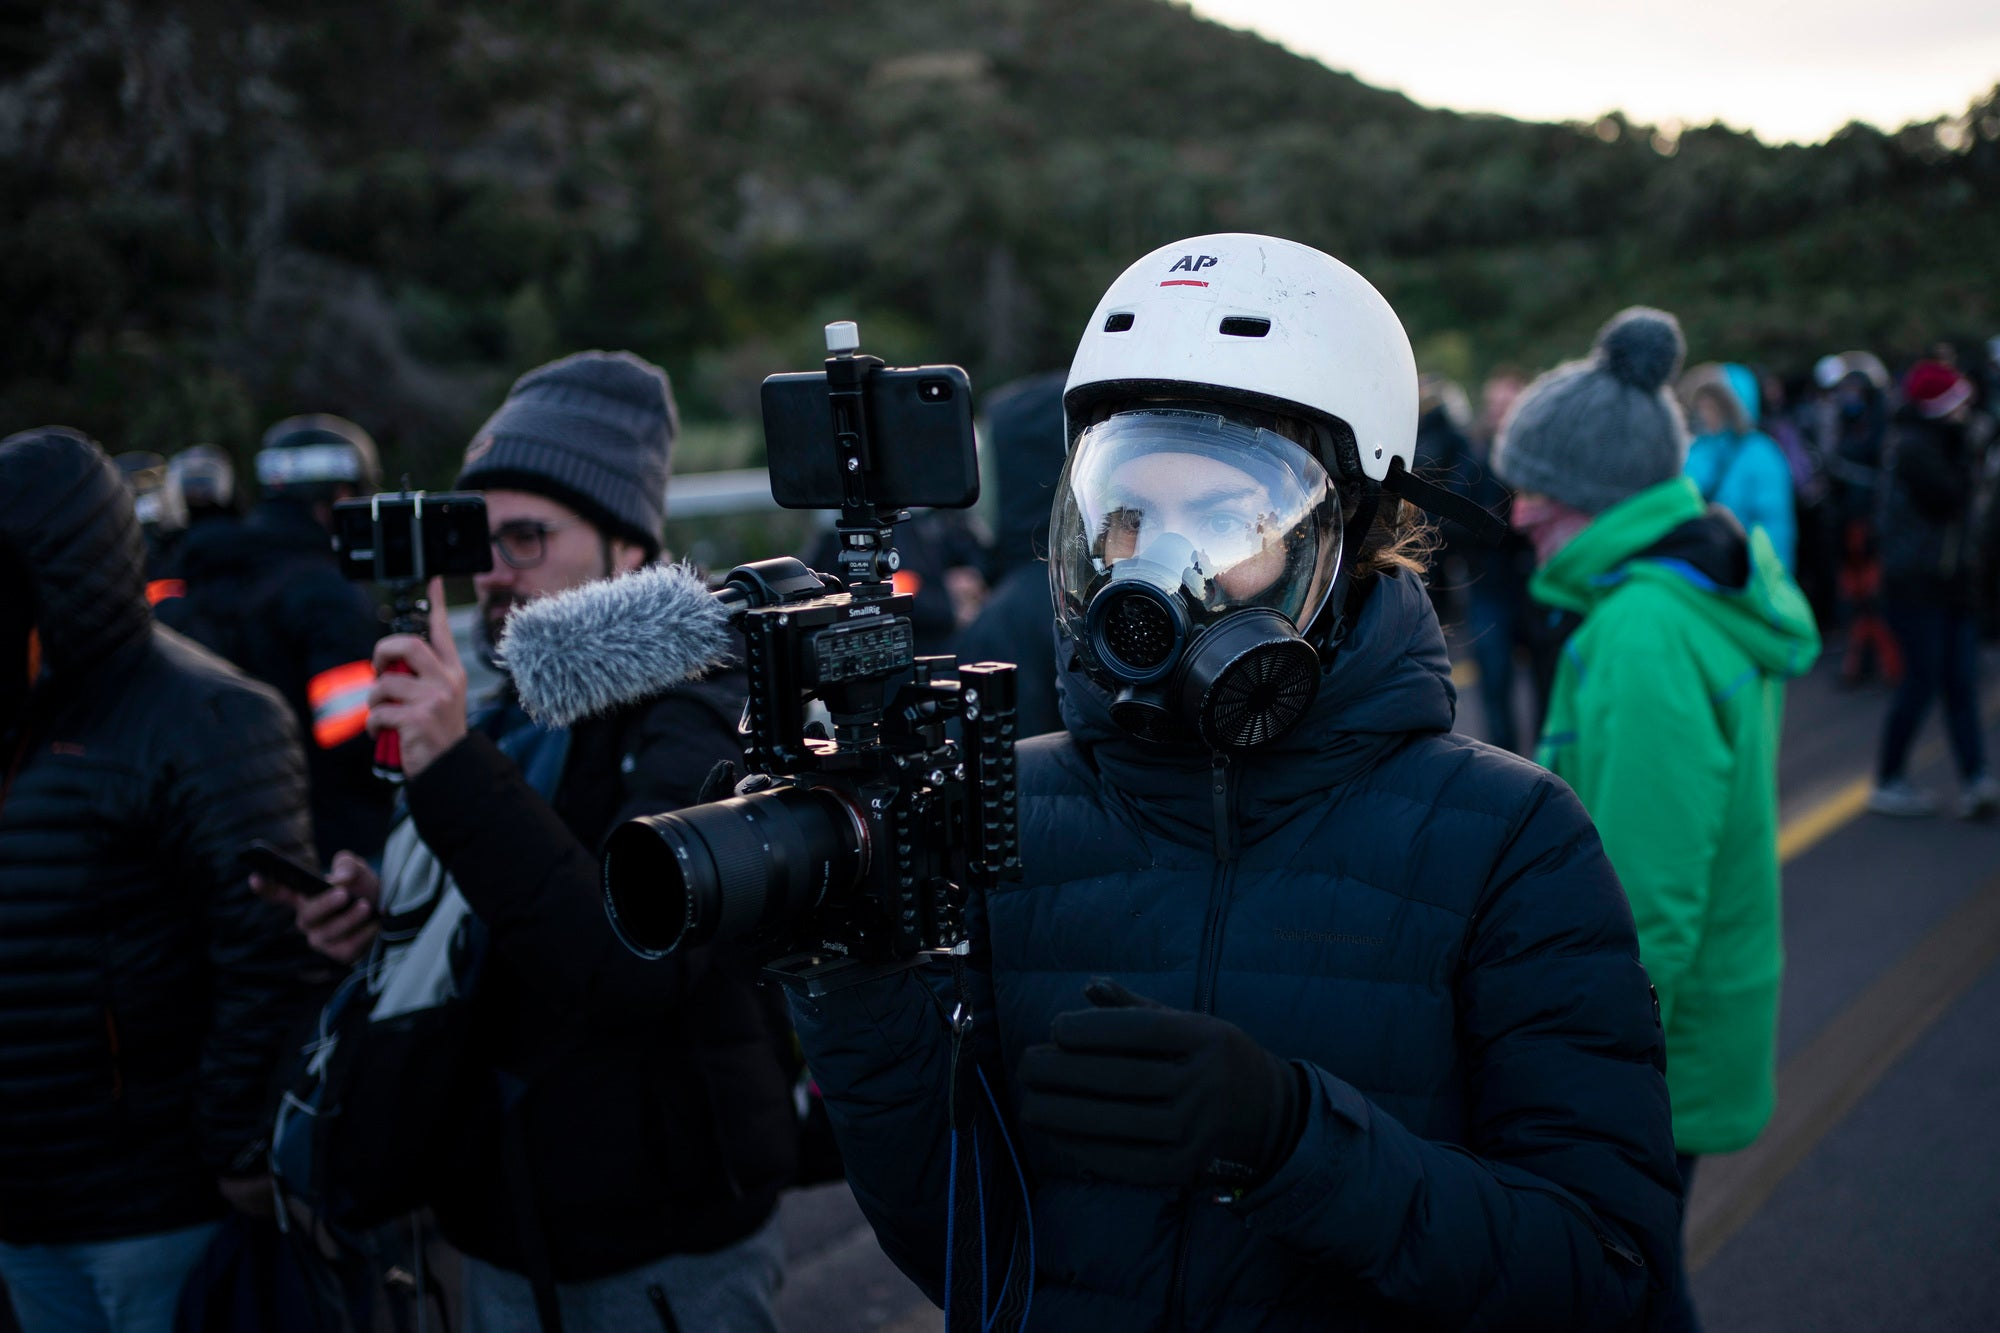 AP-video-journalist-Renata-Brito-covers-protests-at-the-Spain-France-border--Nov.-12--2019--using-Sony-equipment--AP-Photo-.jpg